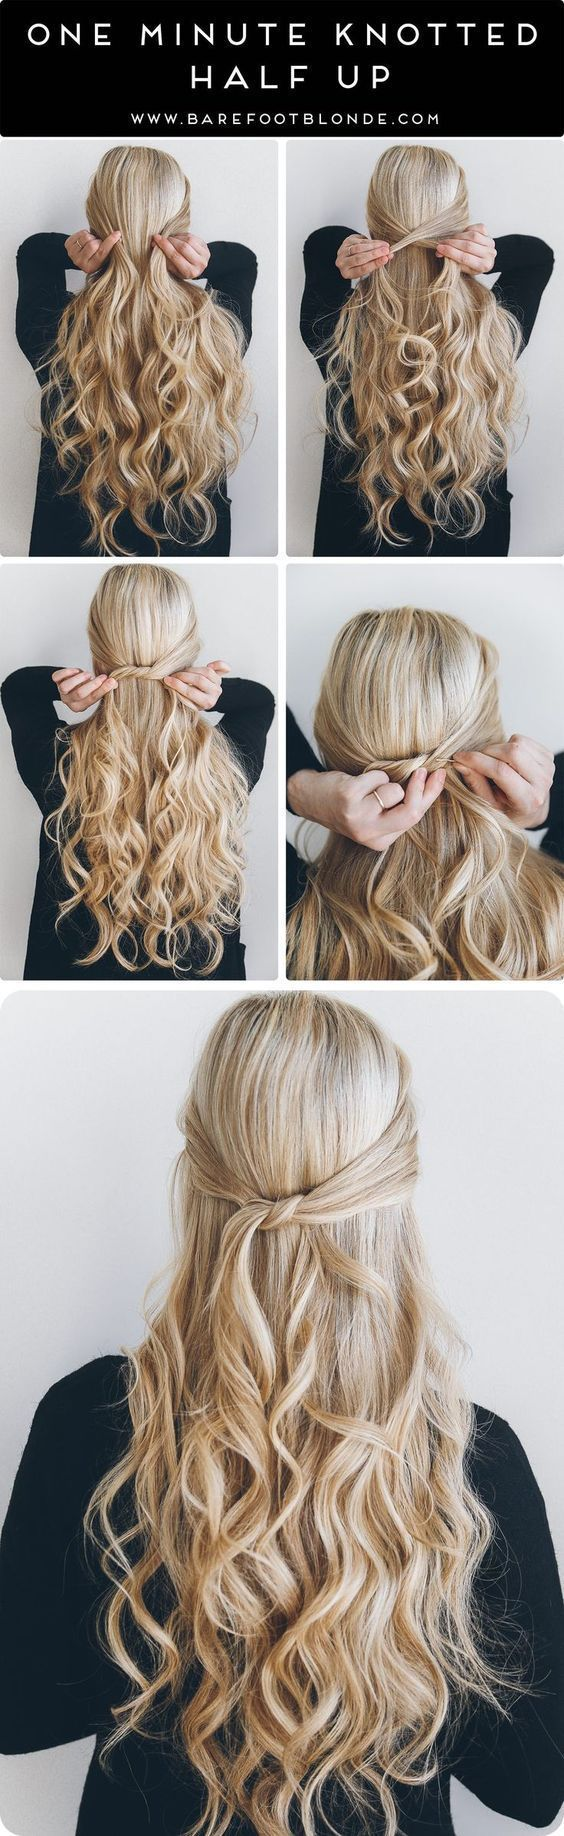 hair style best 25 popular hairstyles ideas on popular 5291